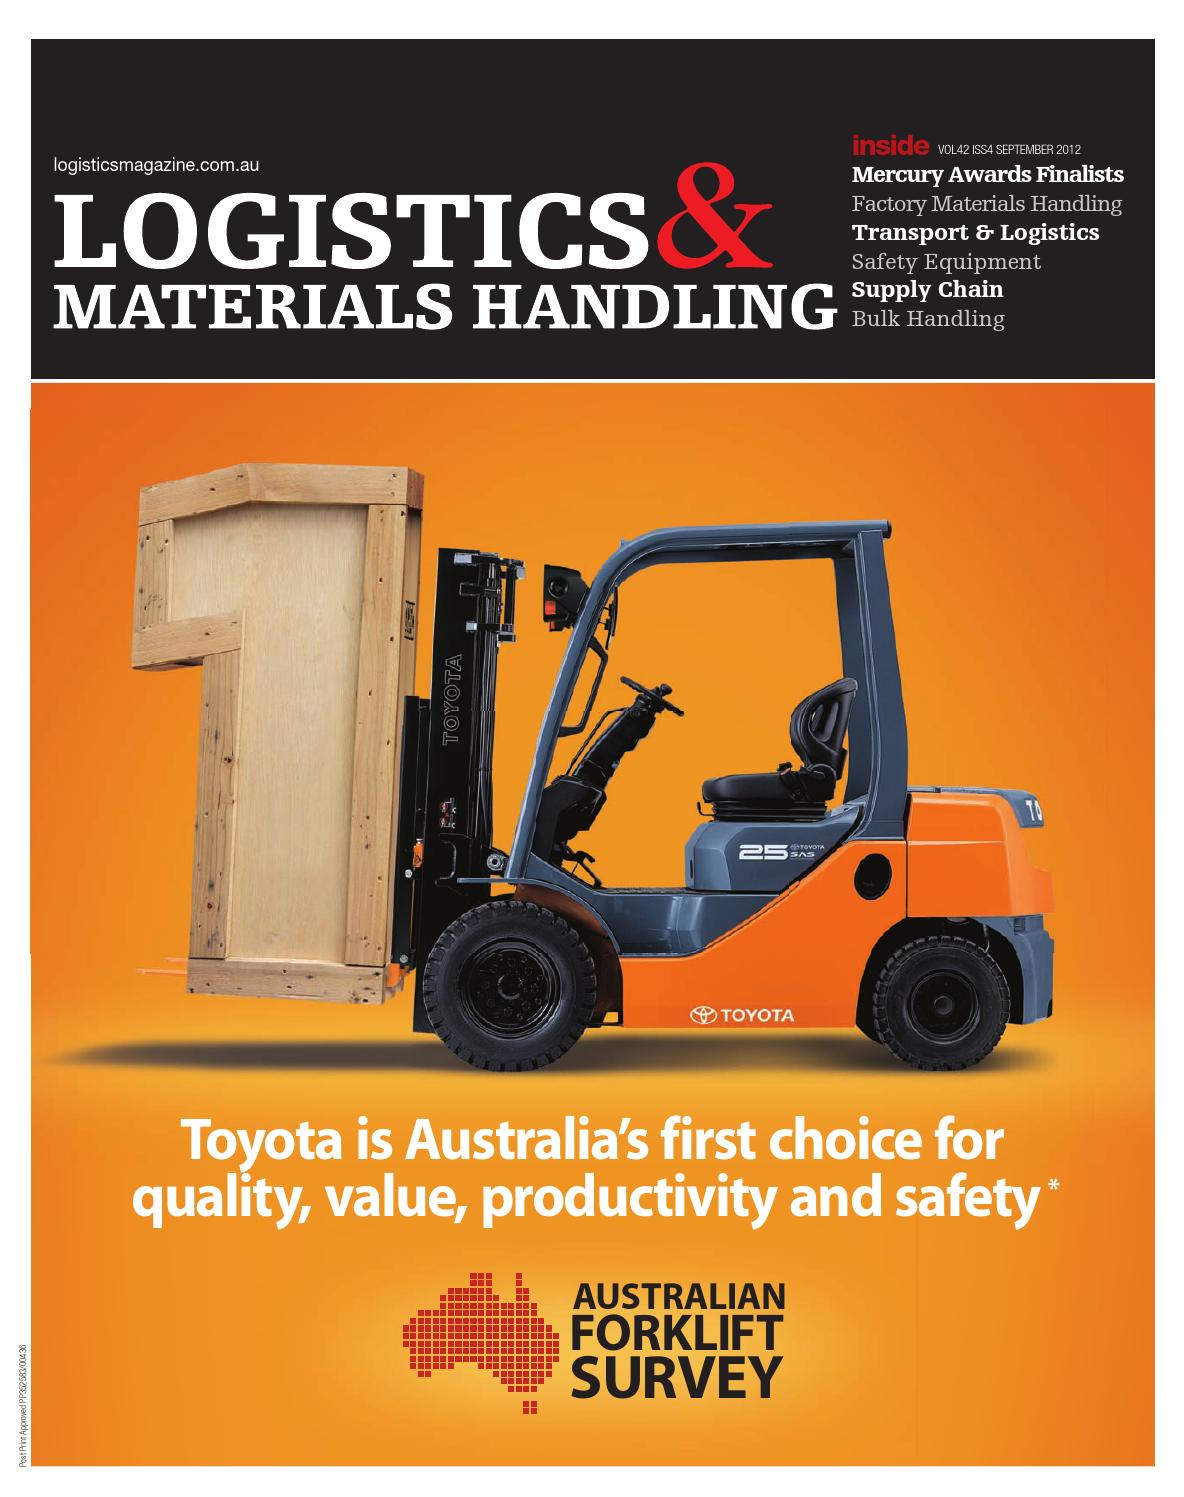 Logistics Materials Handling September 2012 By Primecreative Issuu Toyota Developing Worldfirst Vehicle Wiring Harnesses Recycling